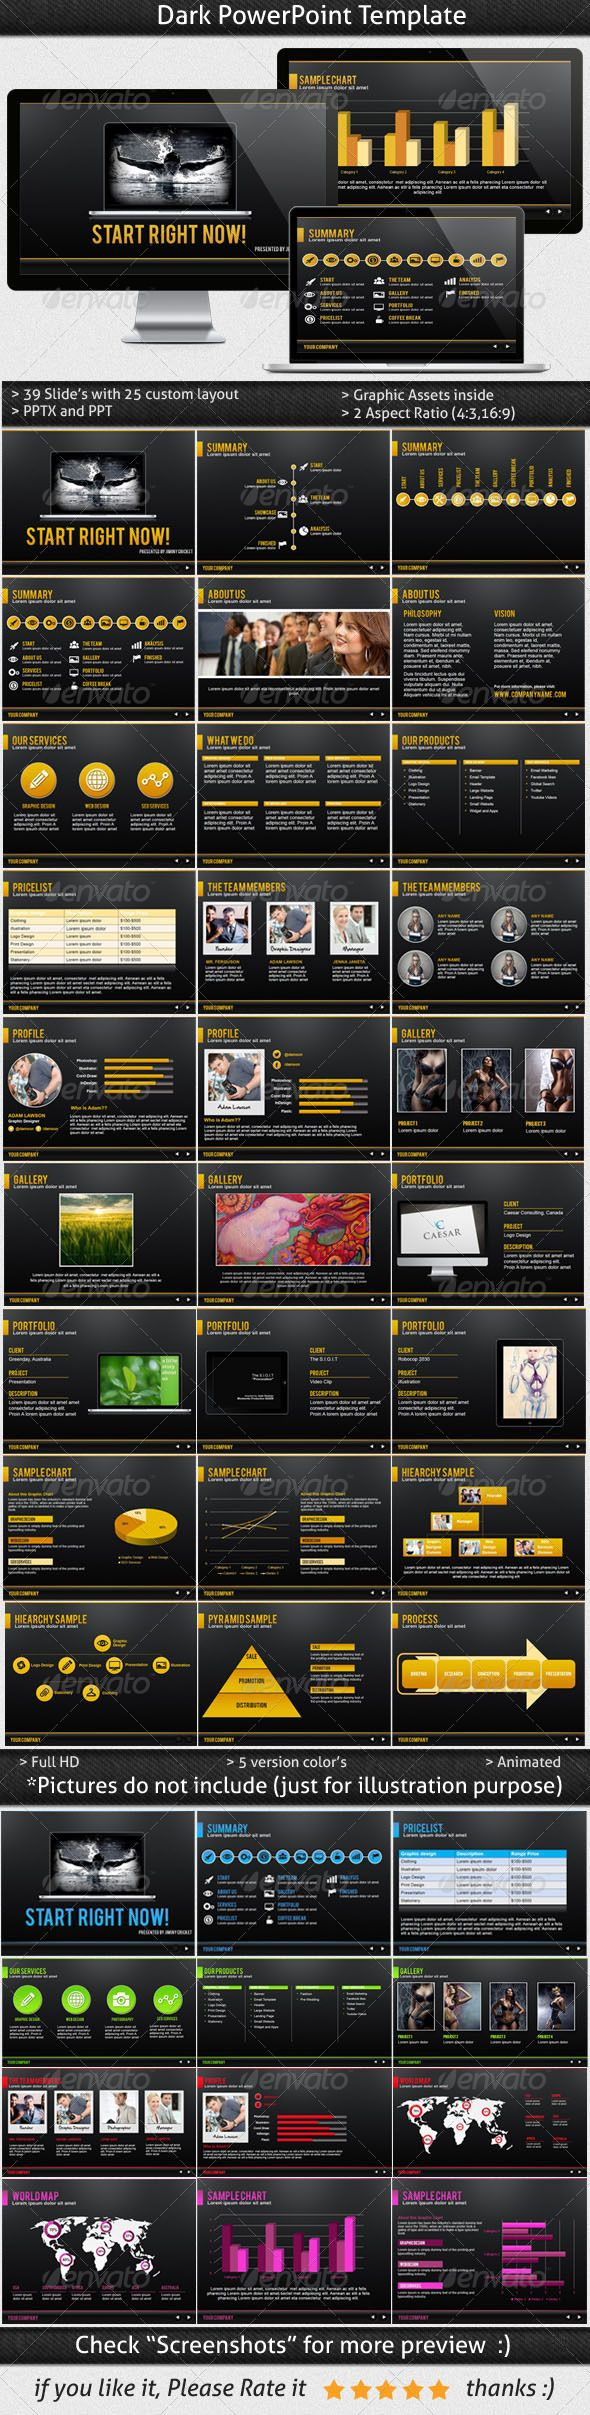 29 best timelines powerpoint templates images on pinterest cleandark powerpoint template business powerpoint templatesbusiness intelligencepresentation toneelgroepblik Image collections